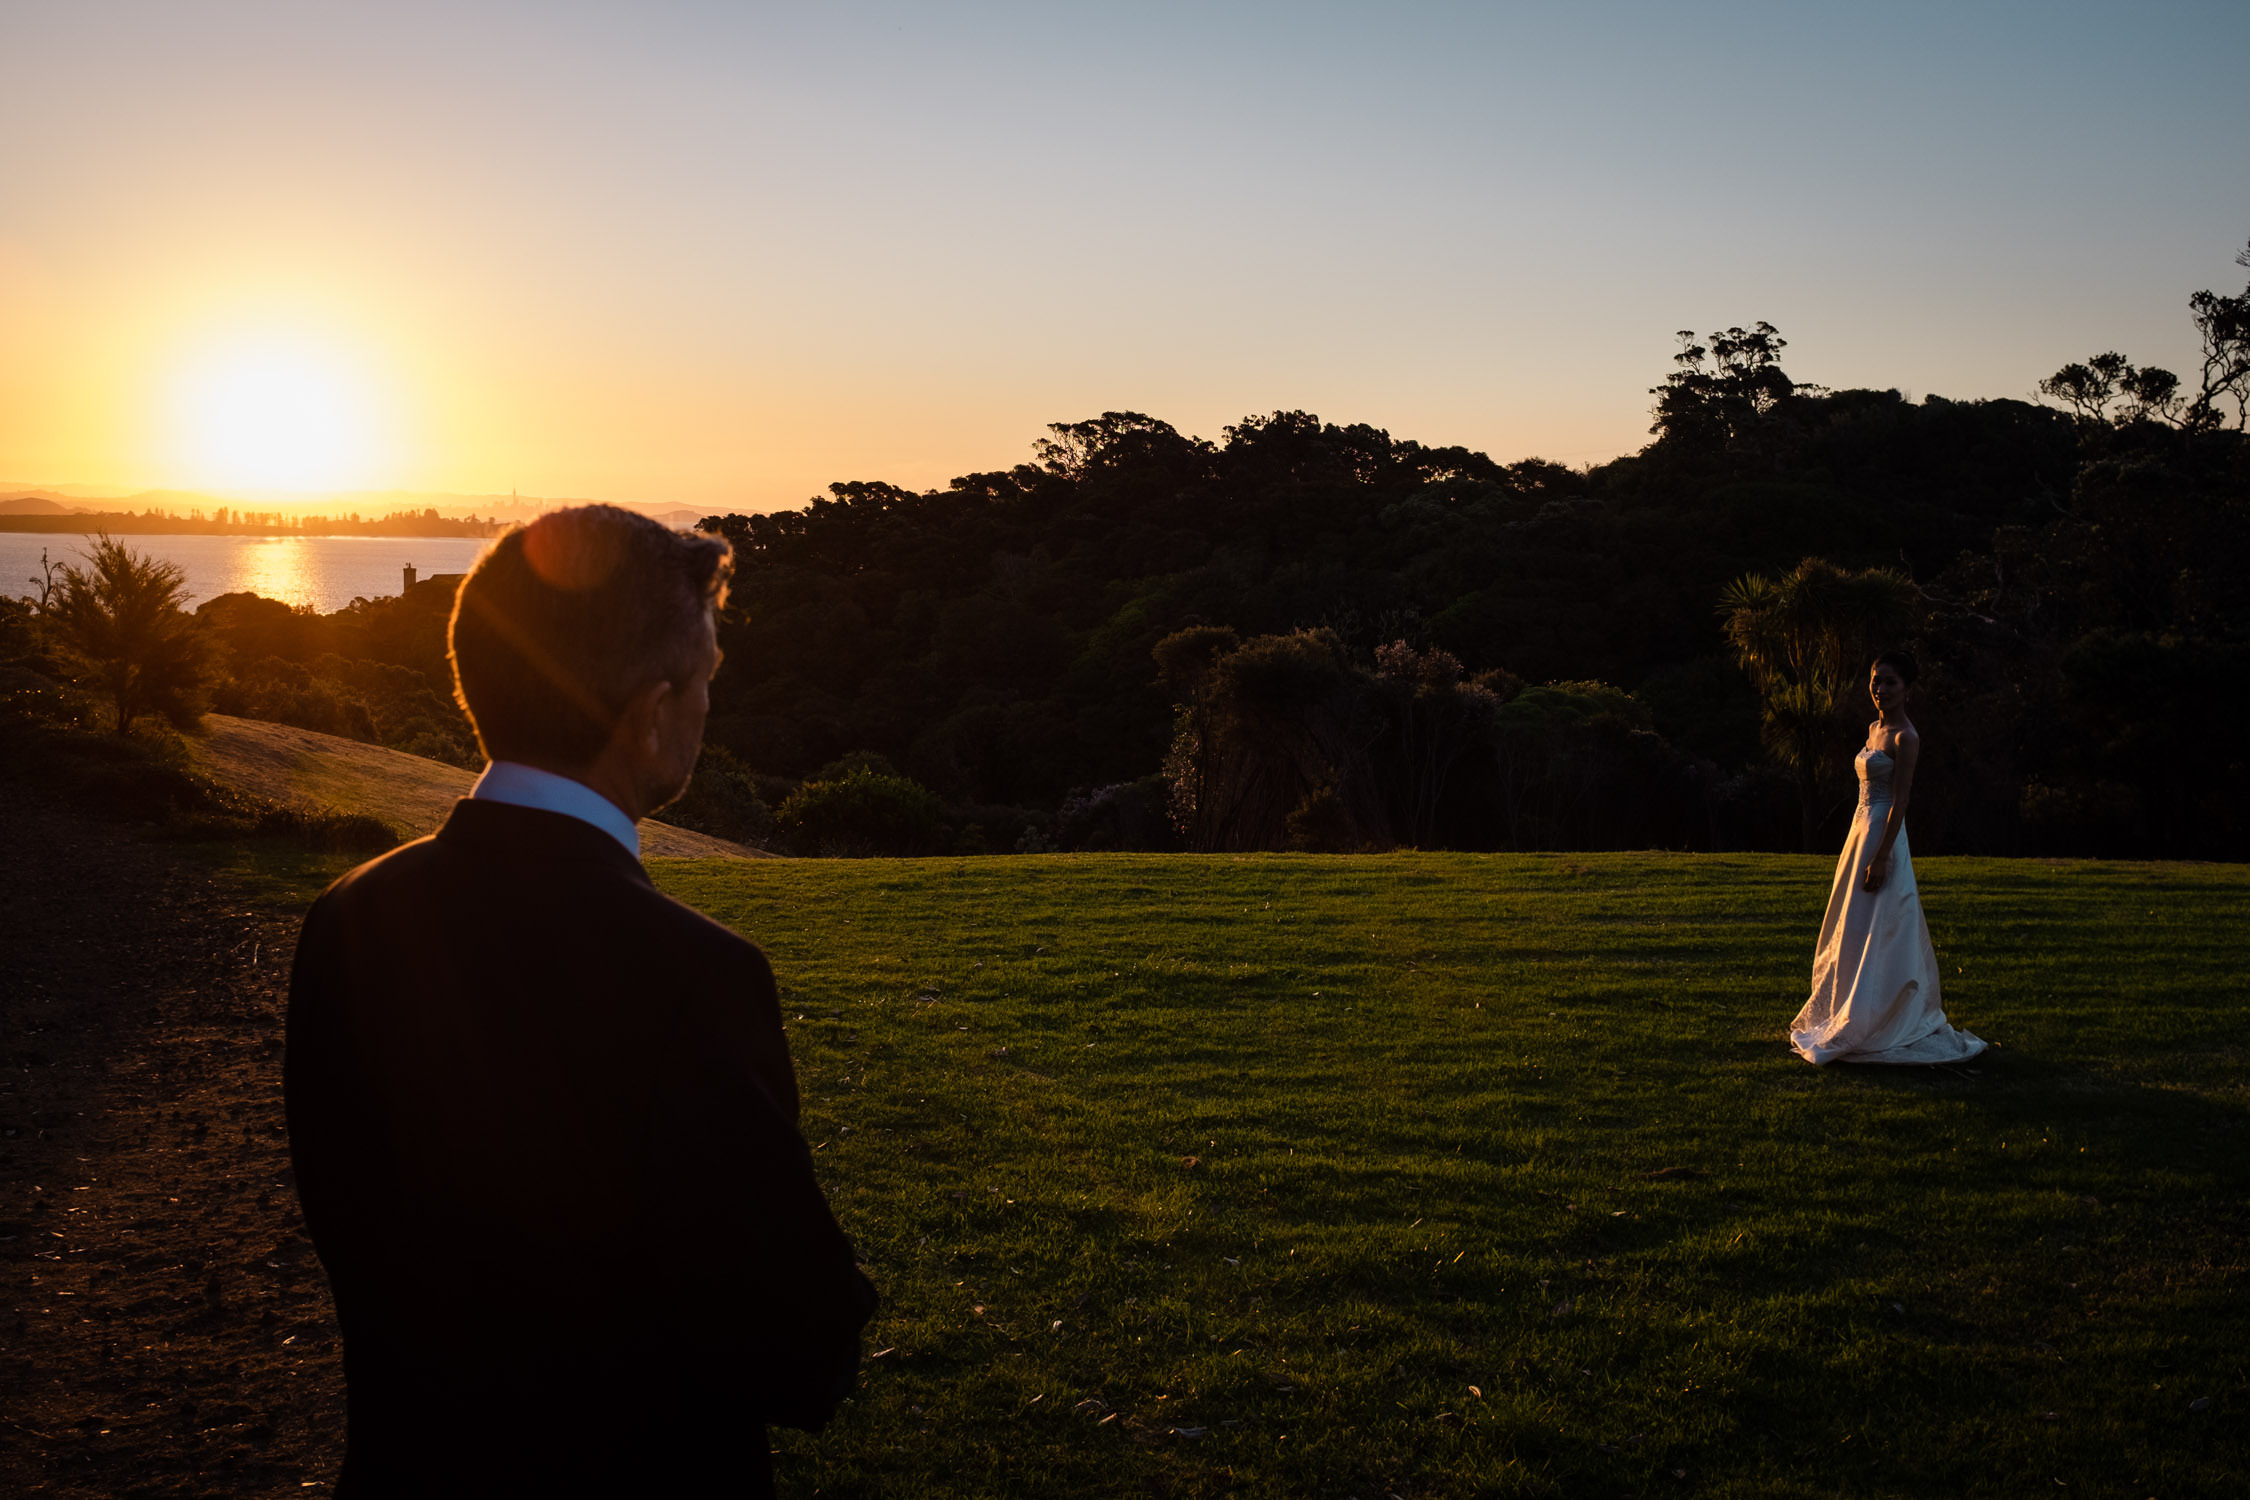 krup studio destination wedding photography & videography in New Zealand